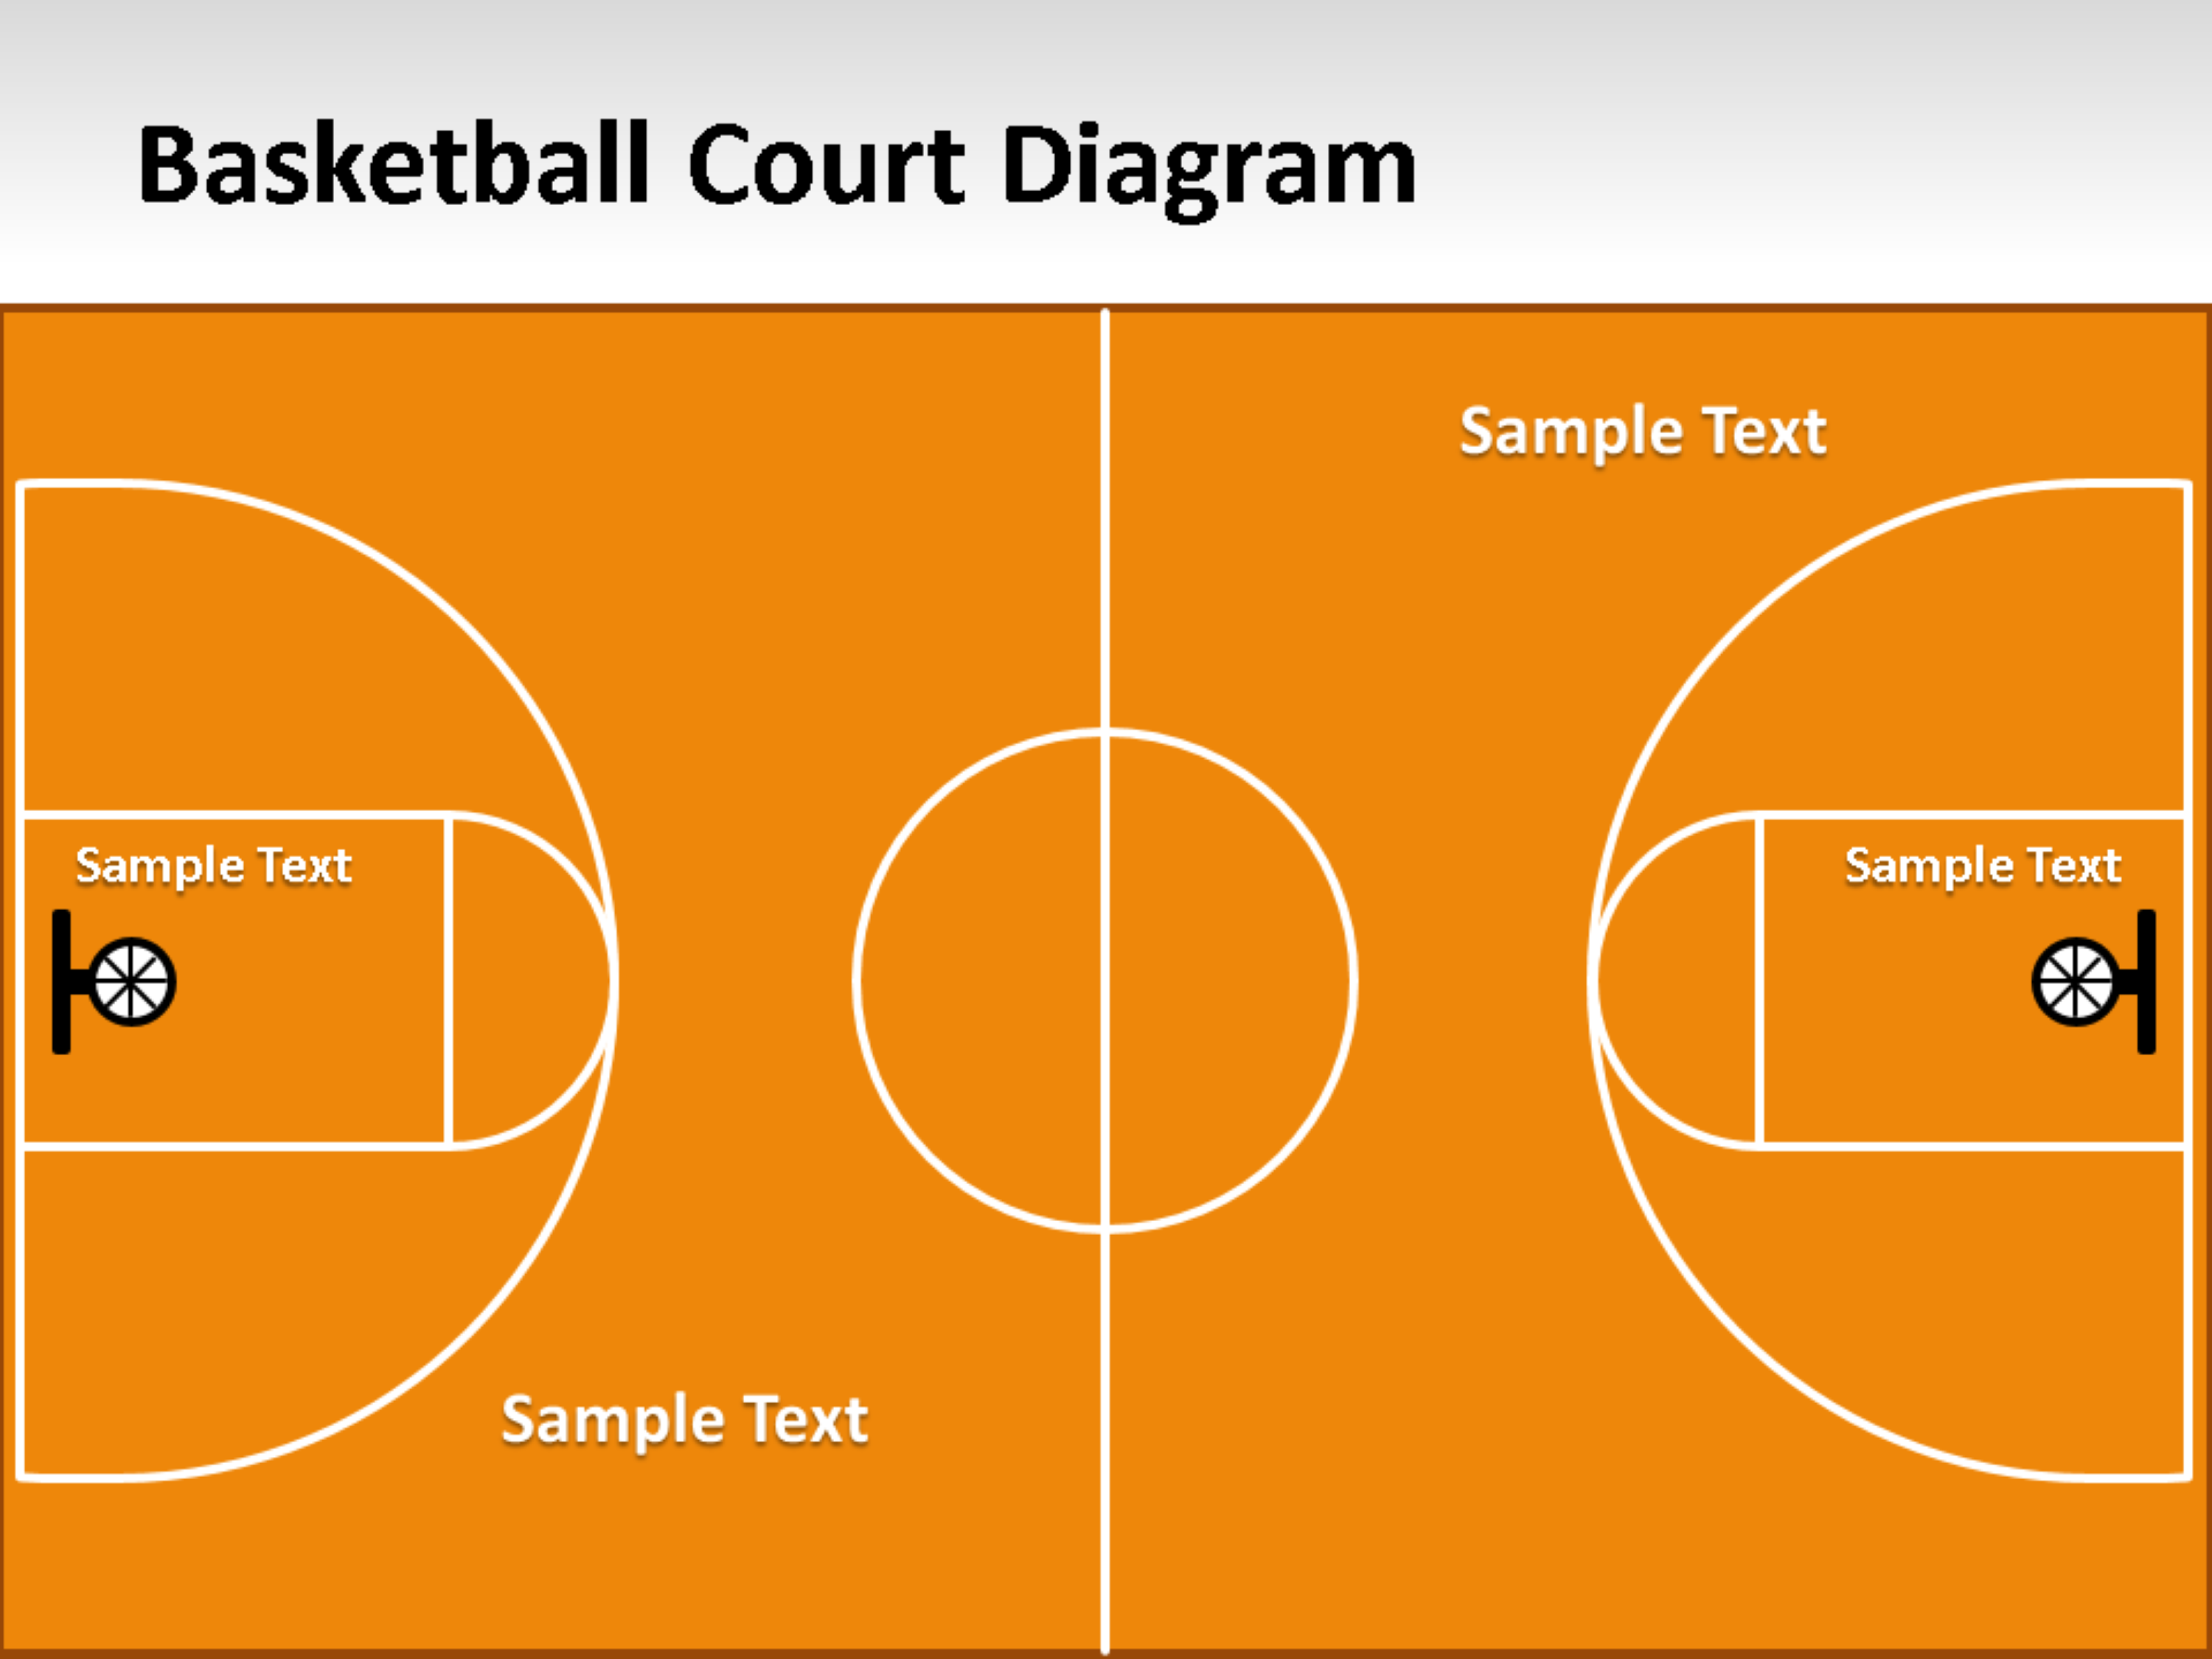 Basketball Court Diagram For Powerpoint.pptx